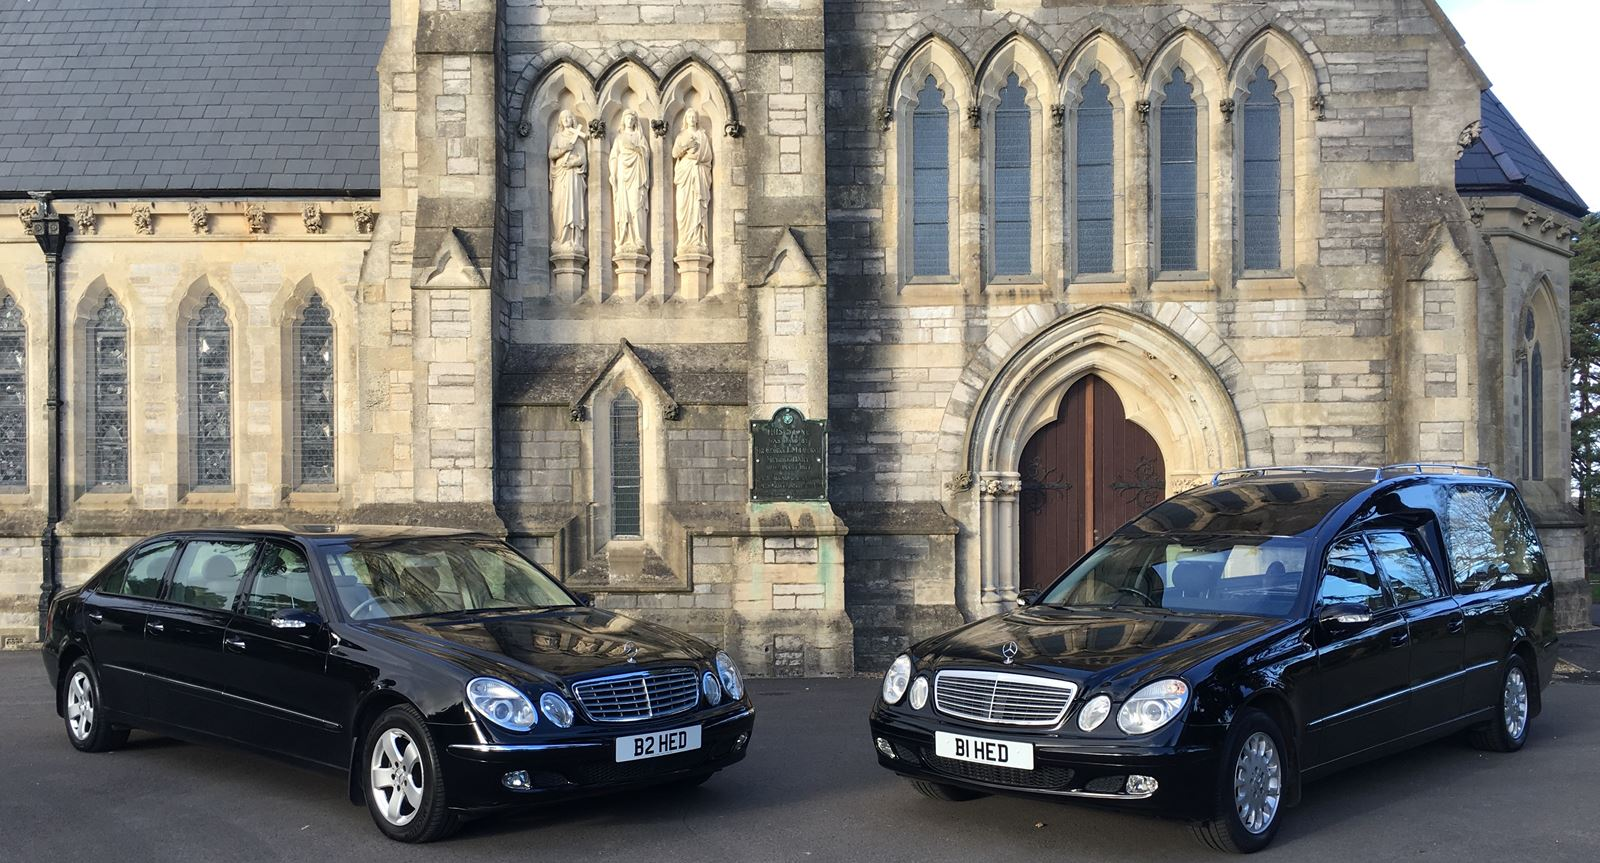 Funeral Services Bournemouth